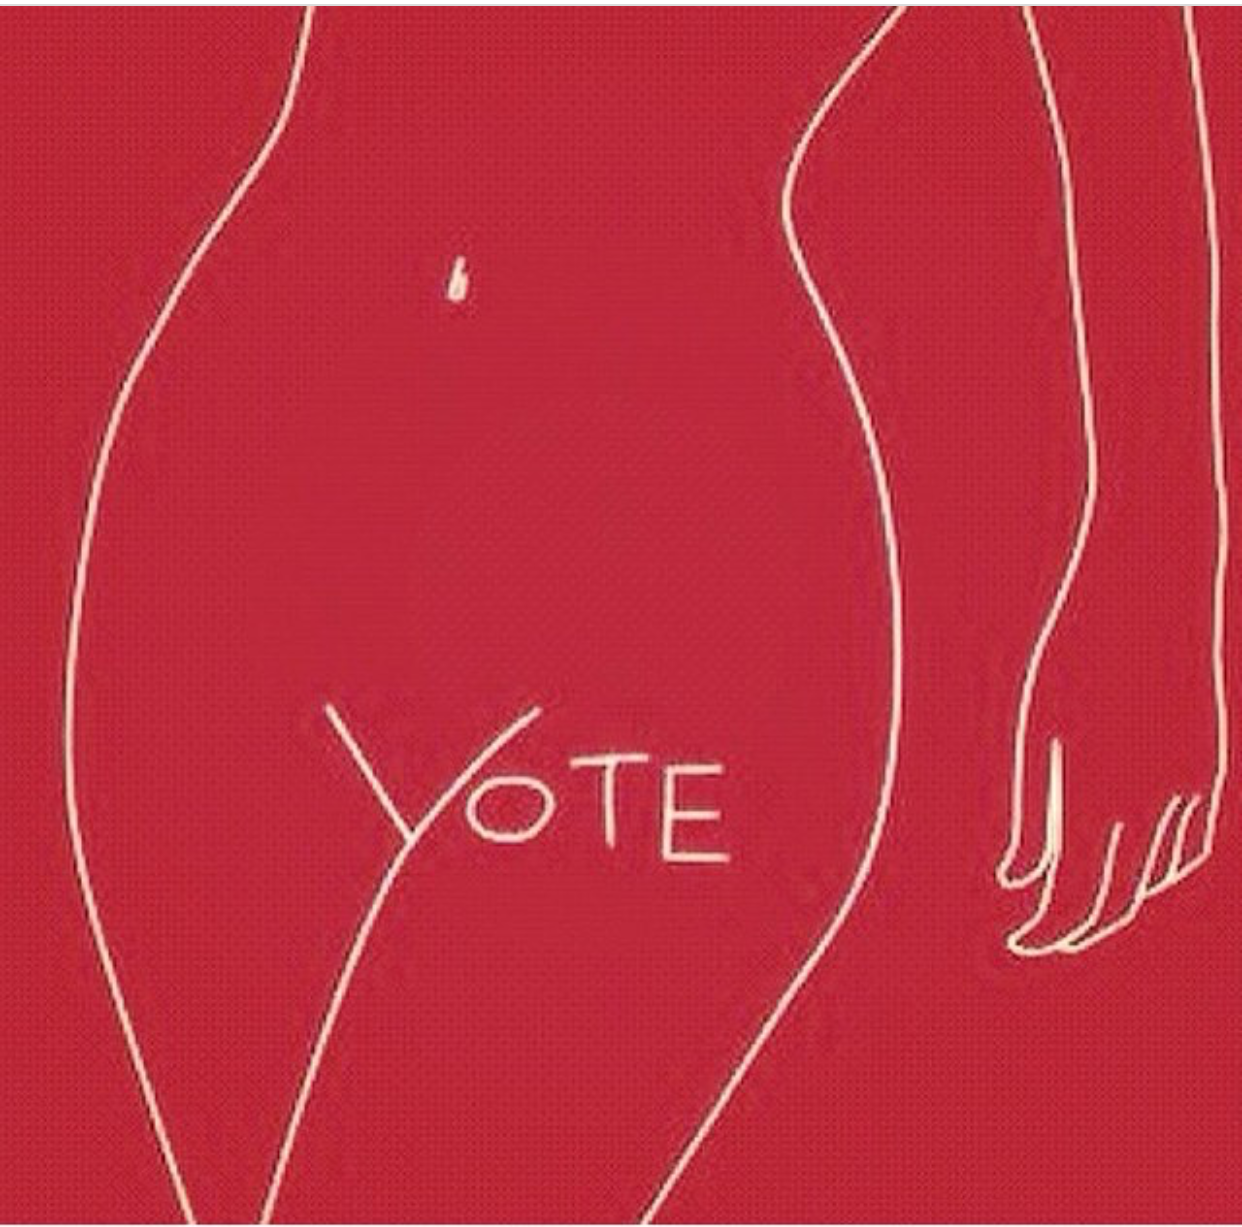 Just one of the things at stake in this election...YOUR BODY